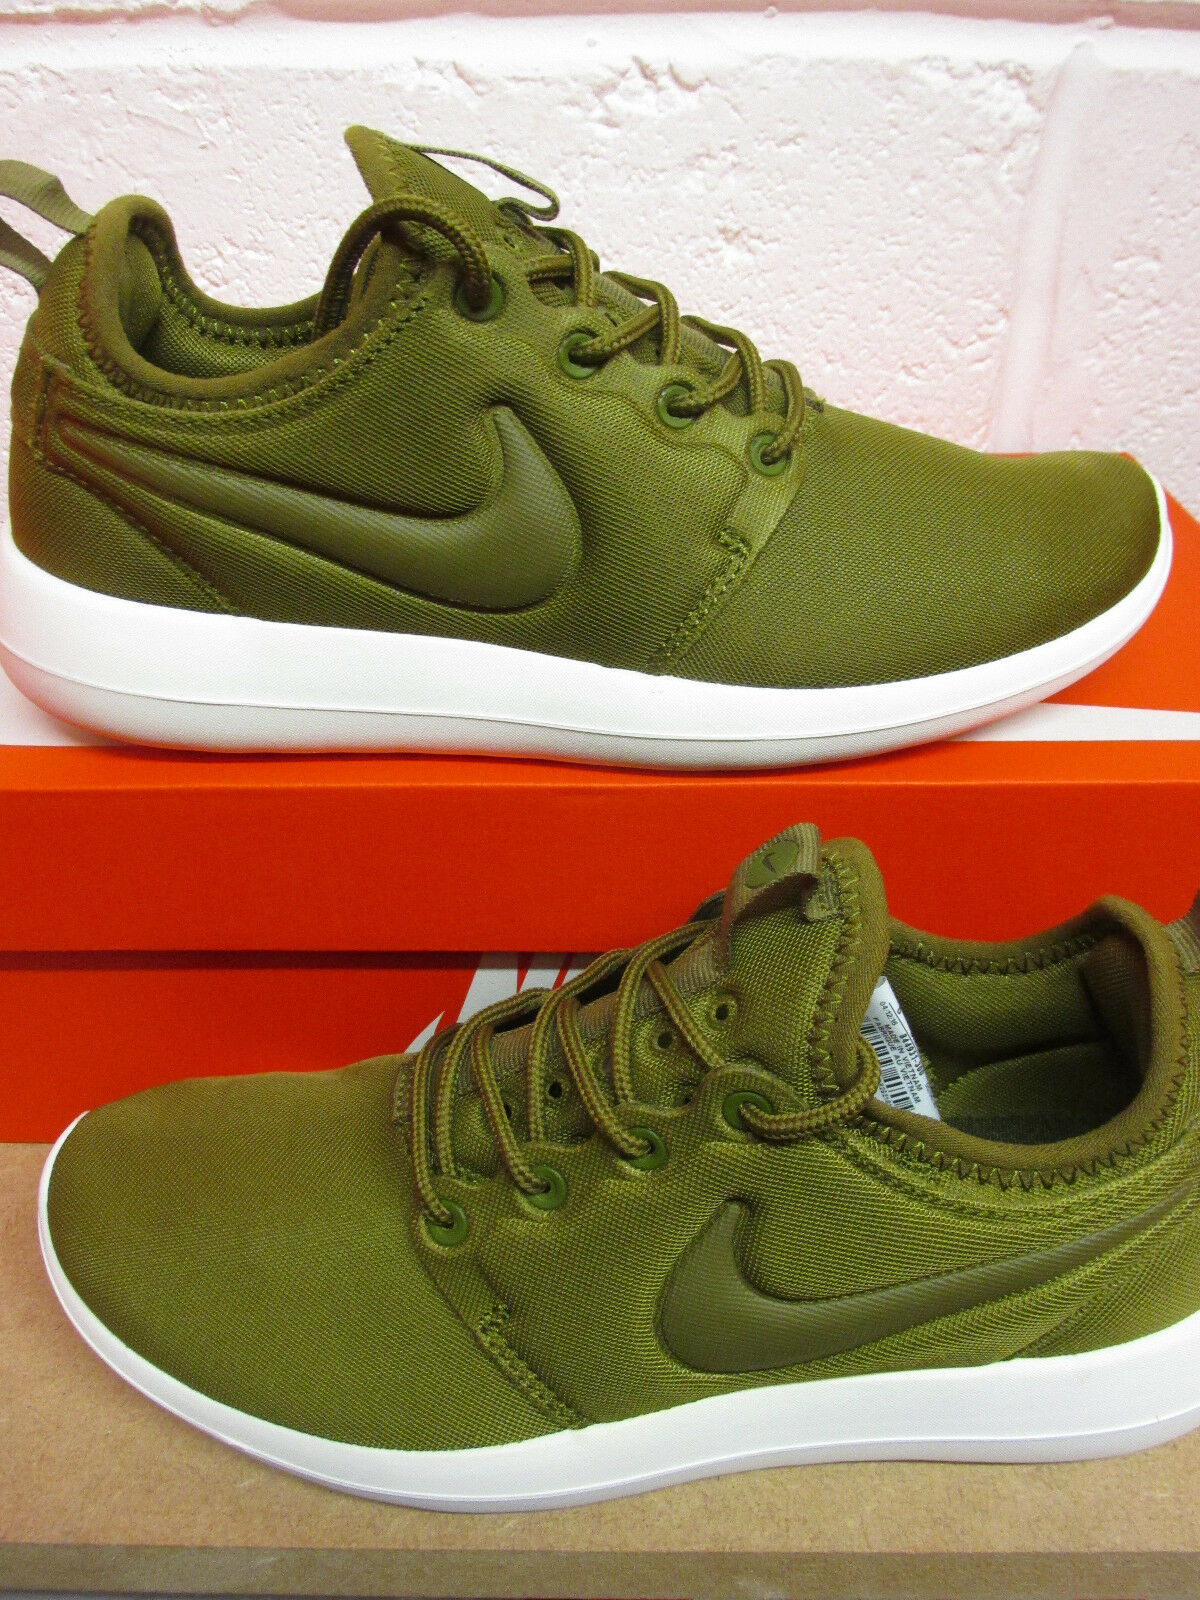 cheap for discount 9fe0d cc757 Nike Femme Roshe deux Running Baskets 844931 300 Baskets Chaussures